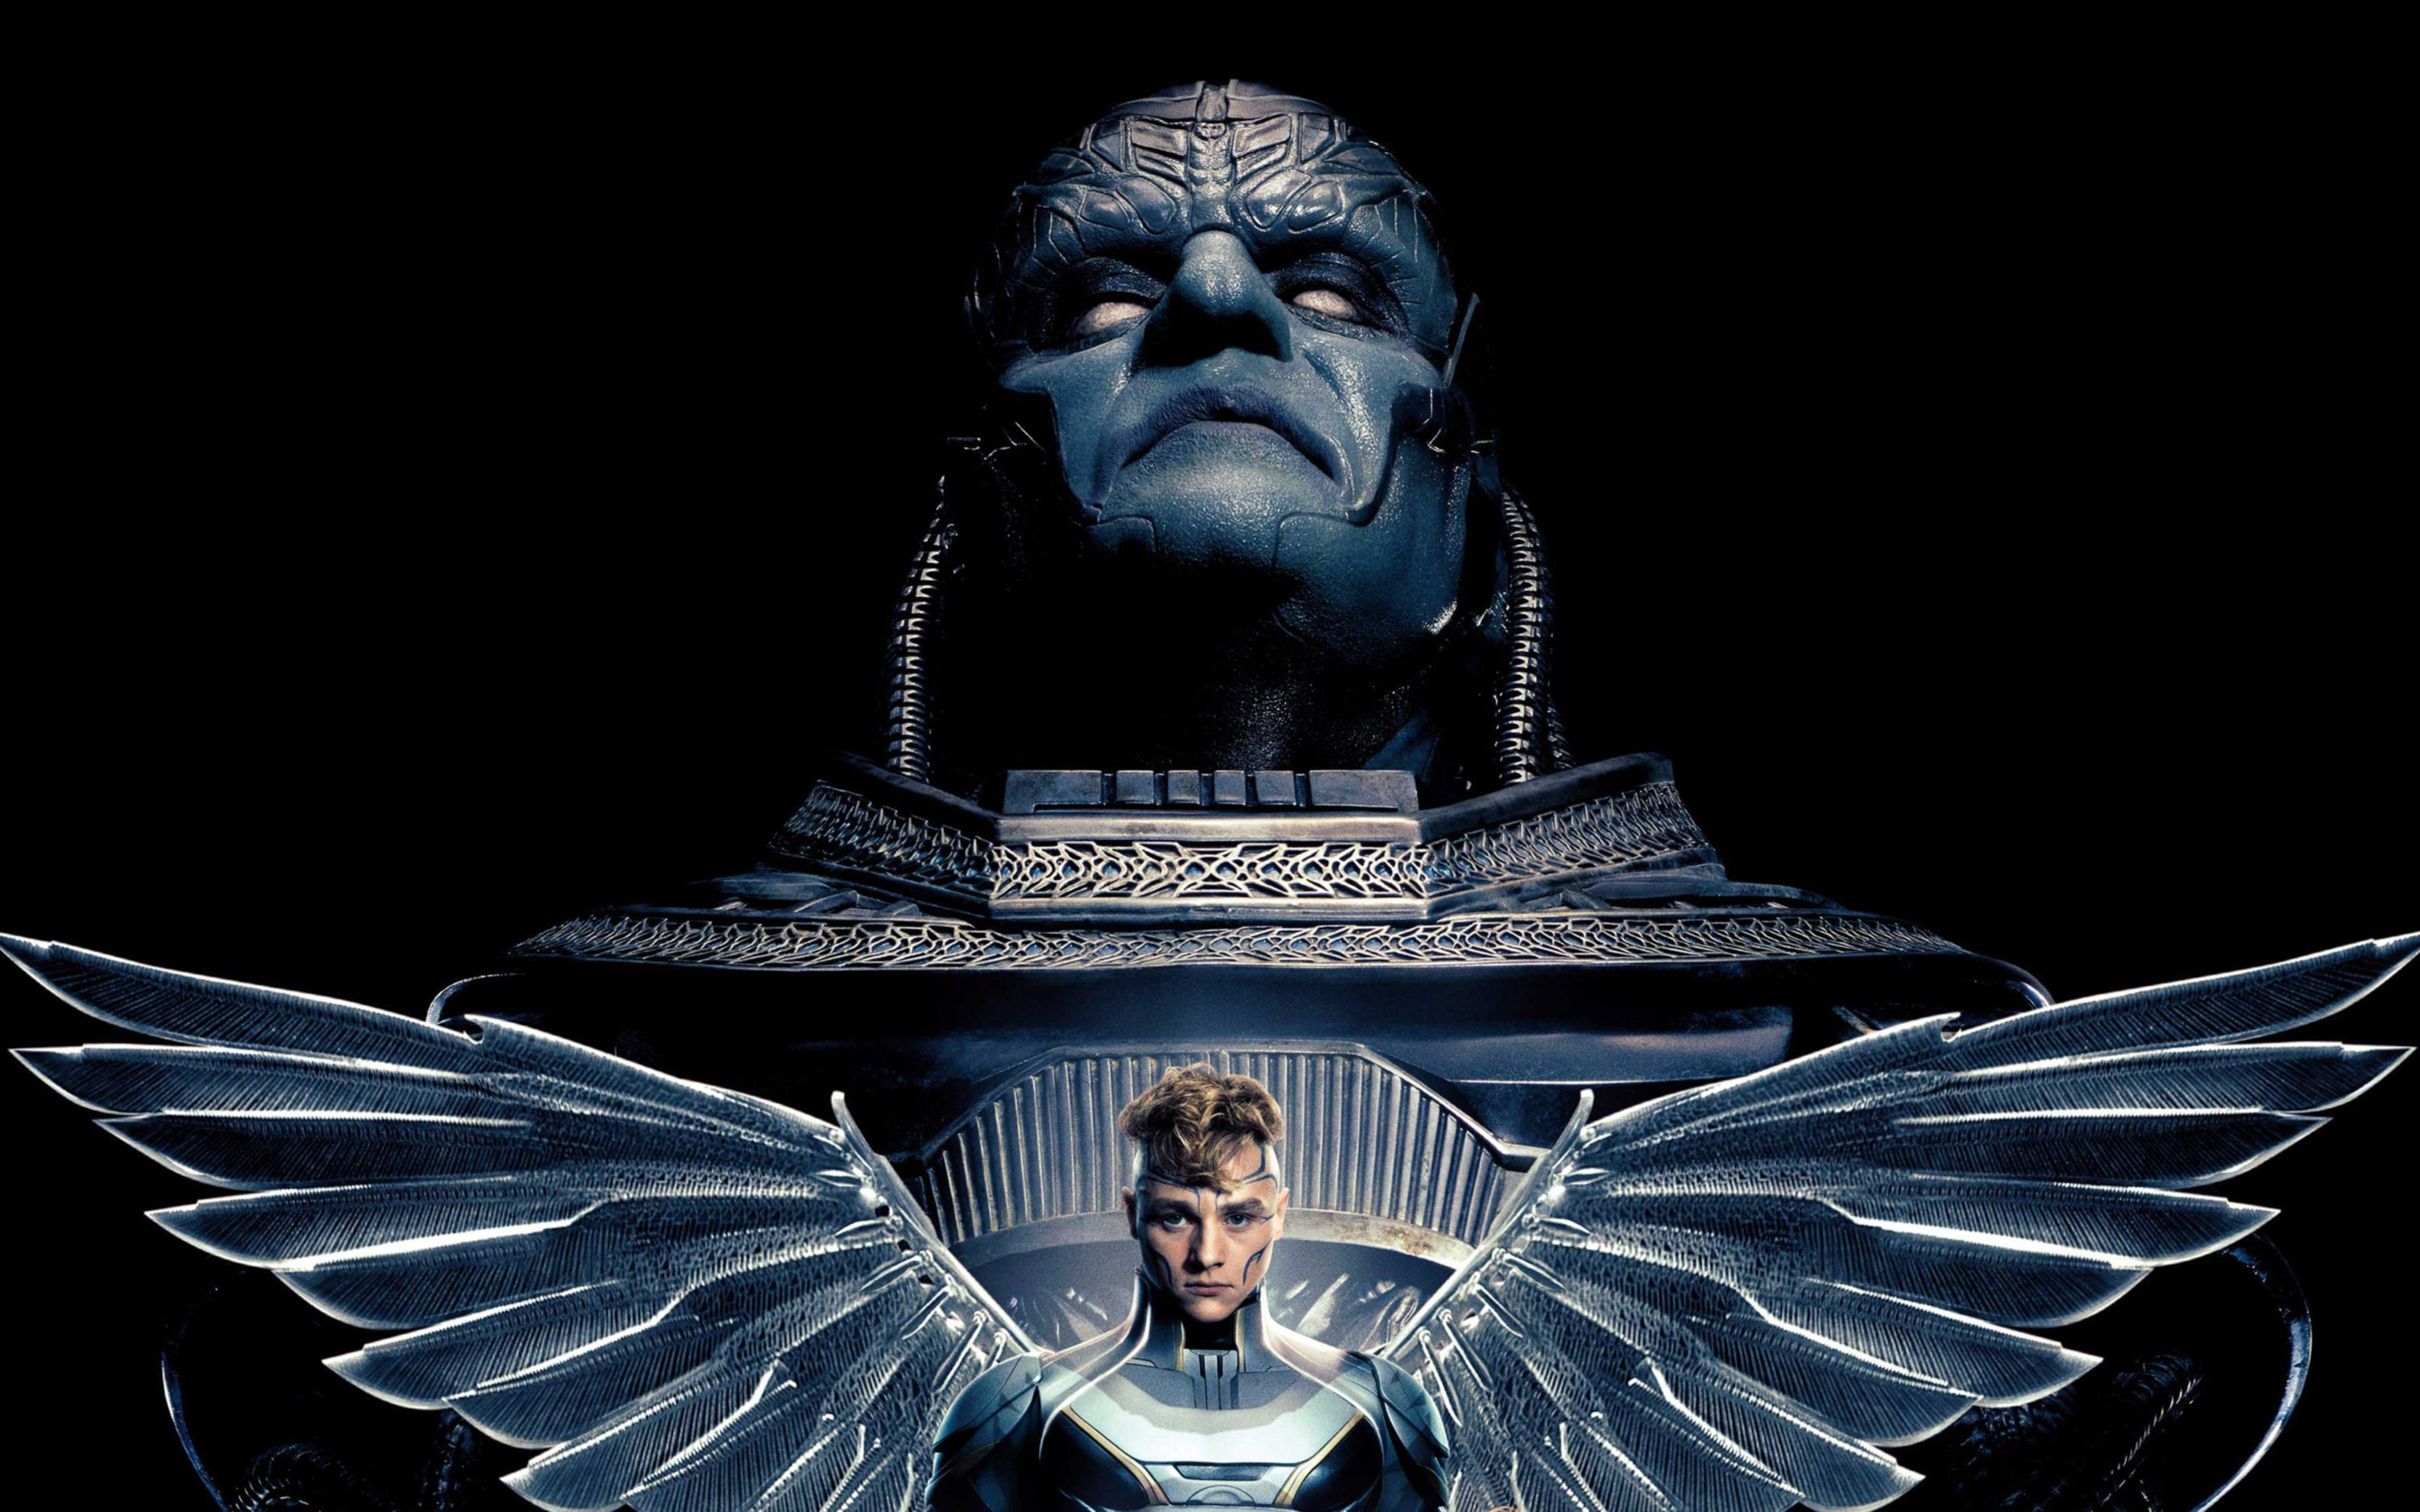 Download free HD X Men Apocalypse Archangel Wide Wallpaper, image